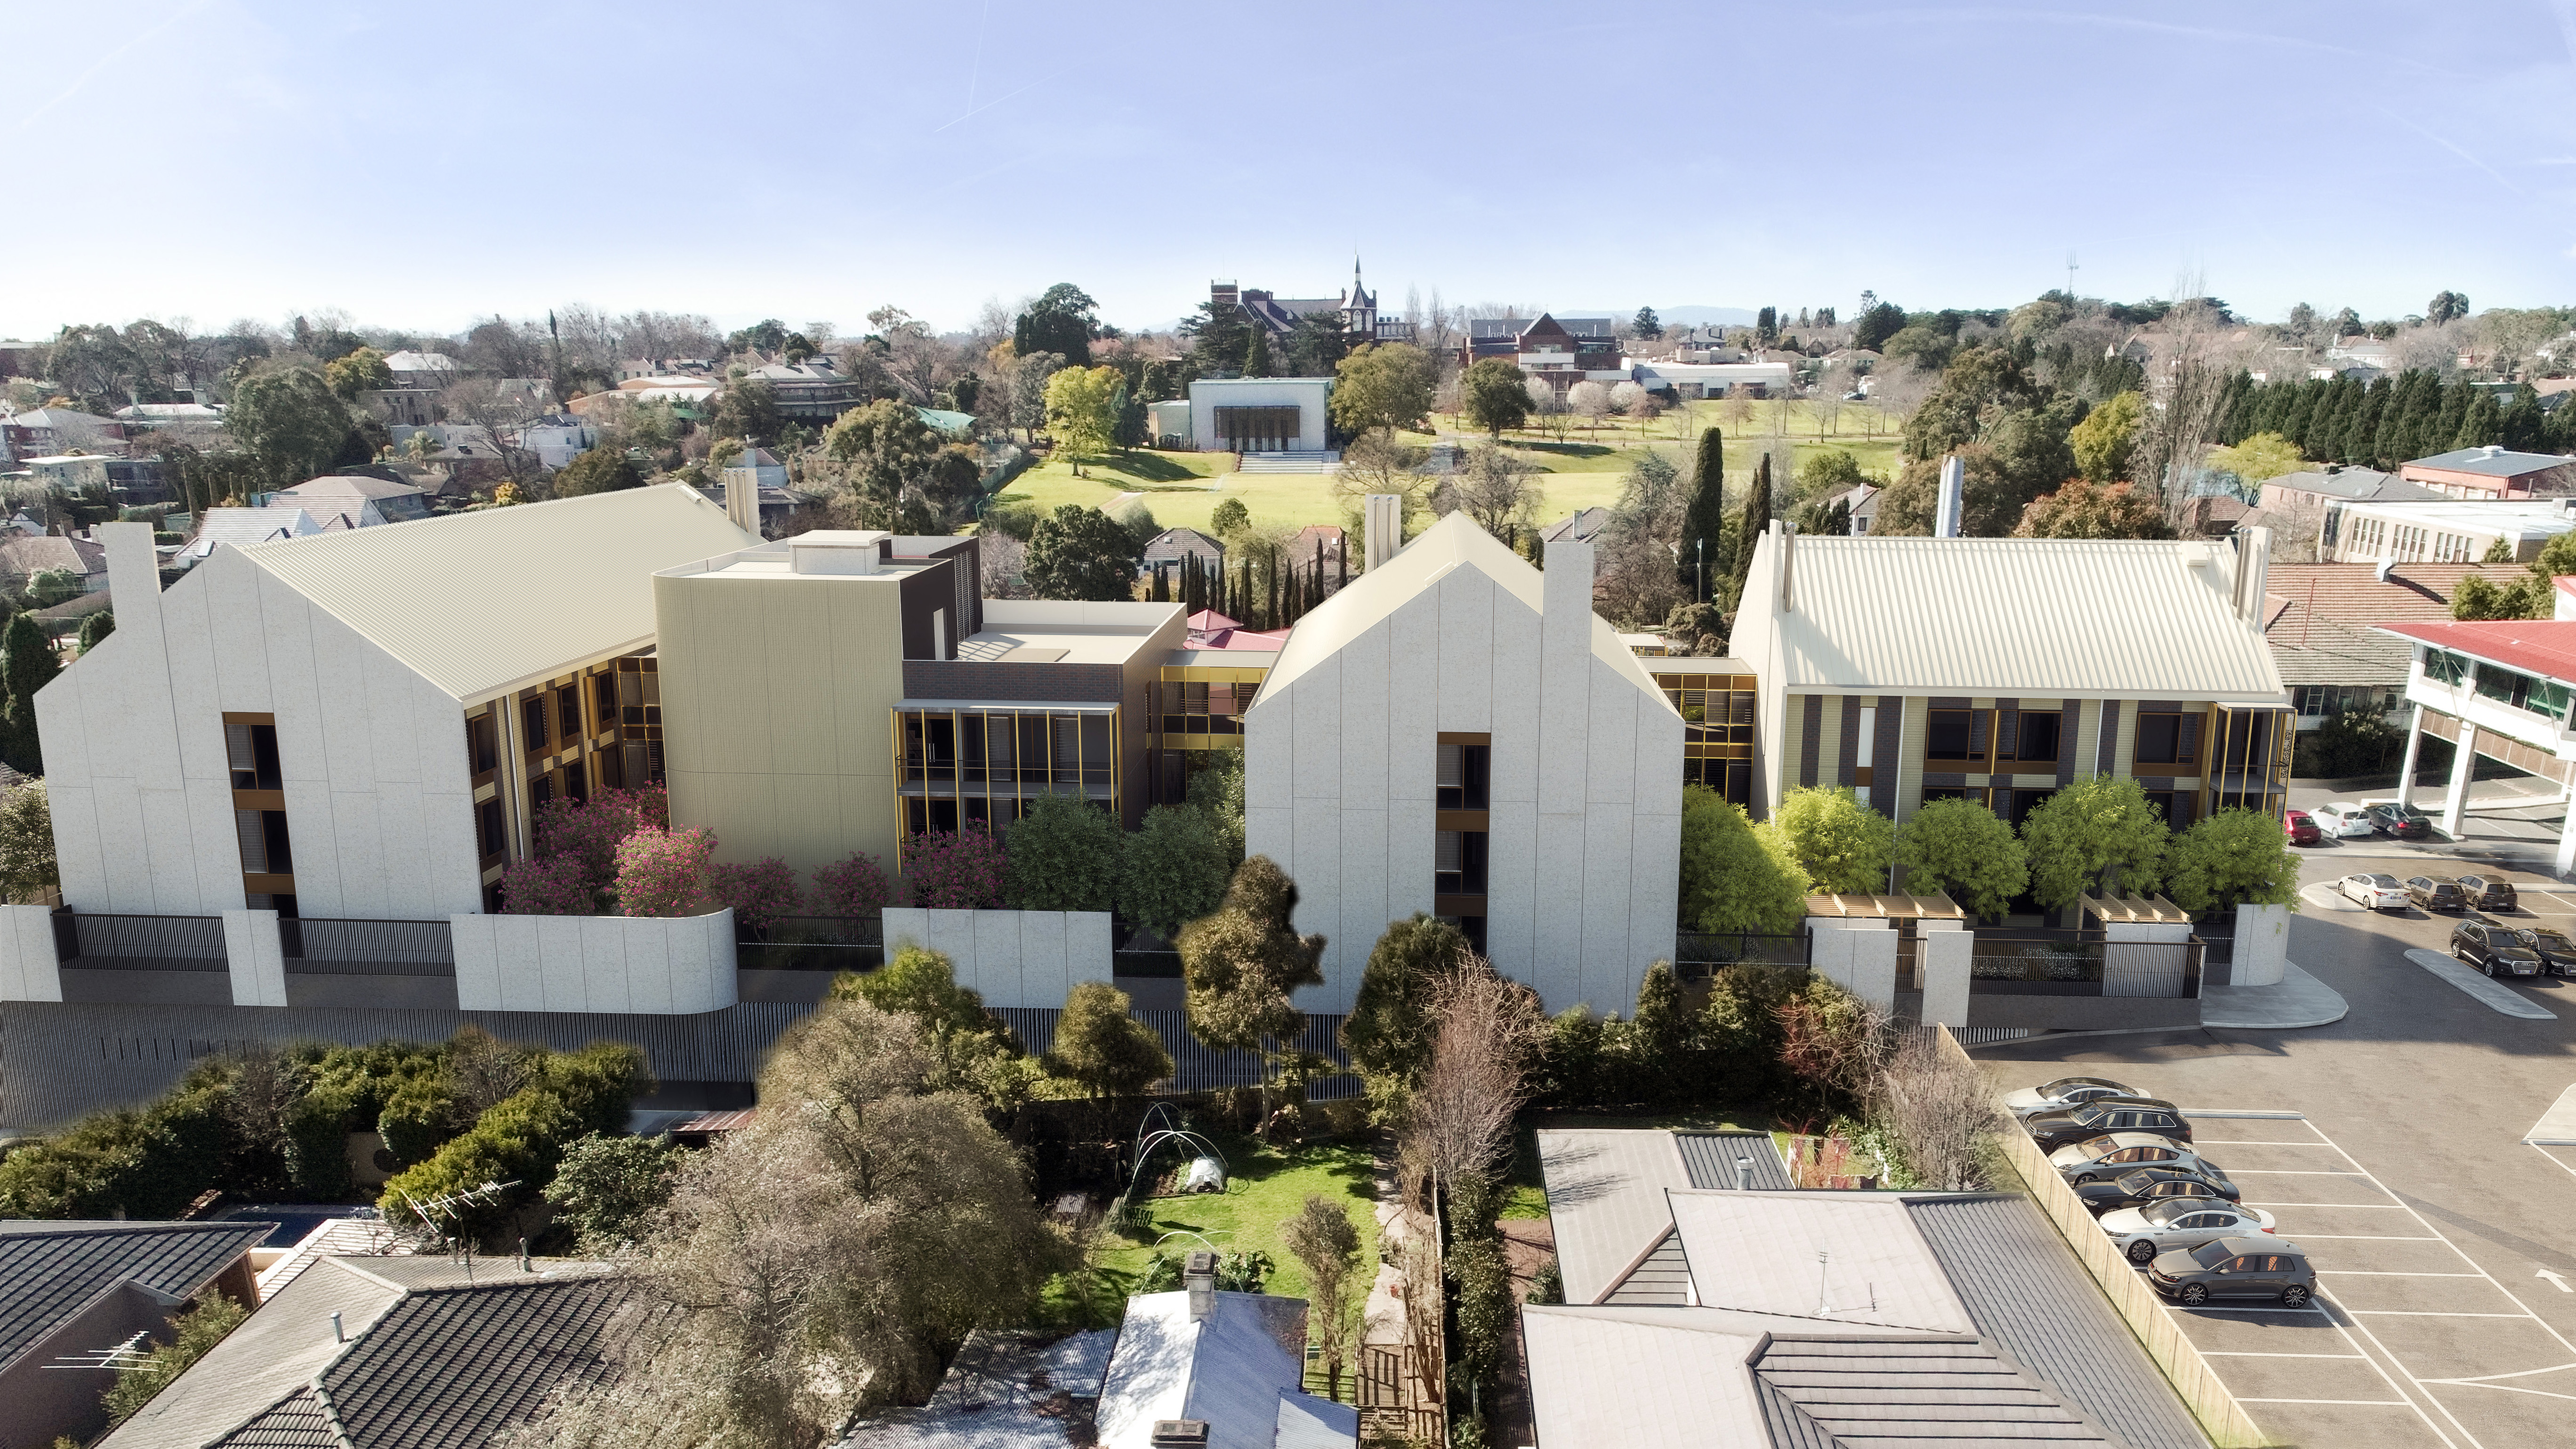 St George Aged Care Aerial